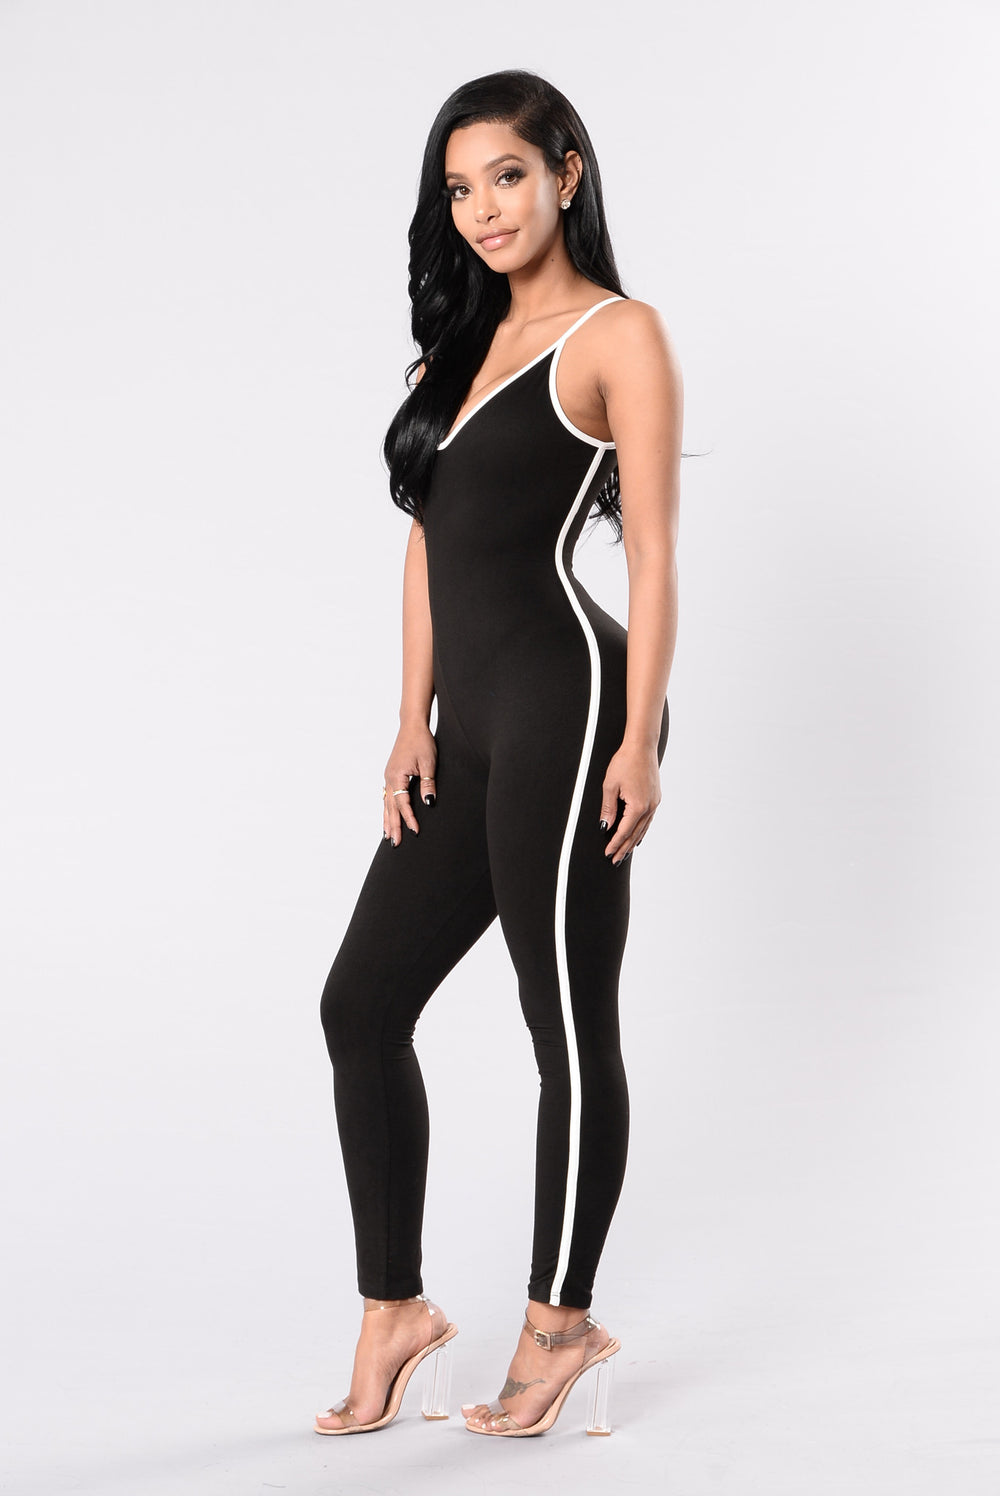 Moving On Up Jumpsuit - Black/White